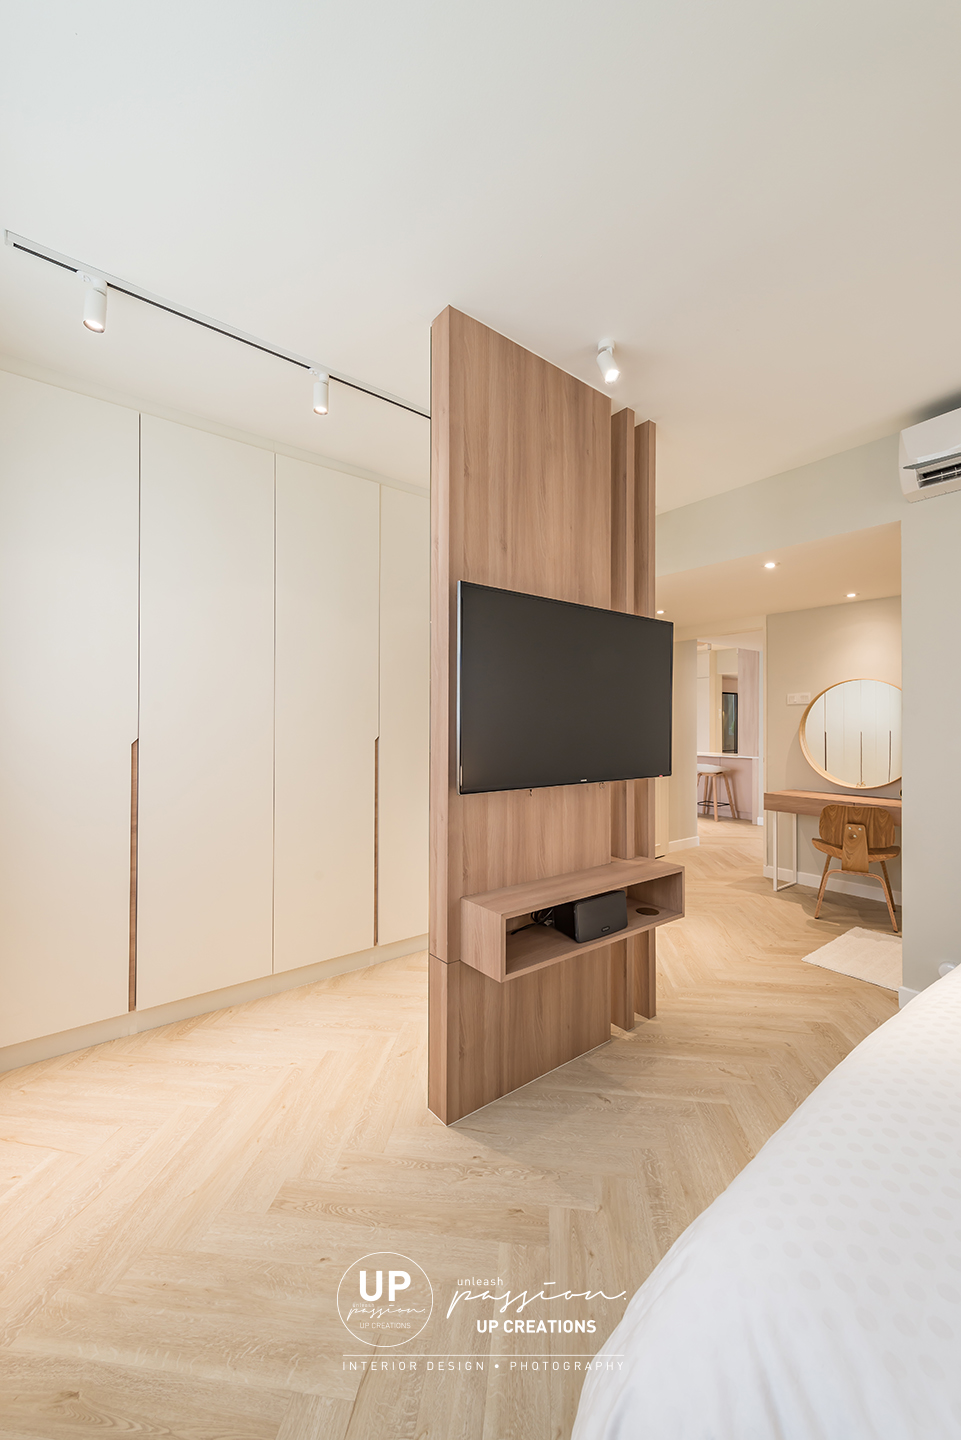 Mont Kiara Pines condo feature divider as a TV partition as well